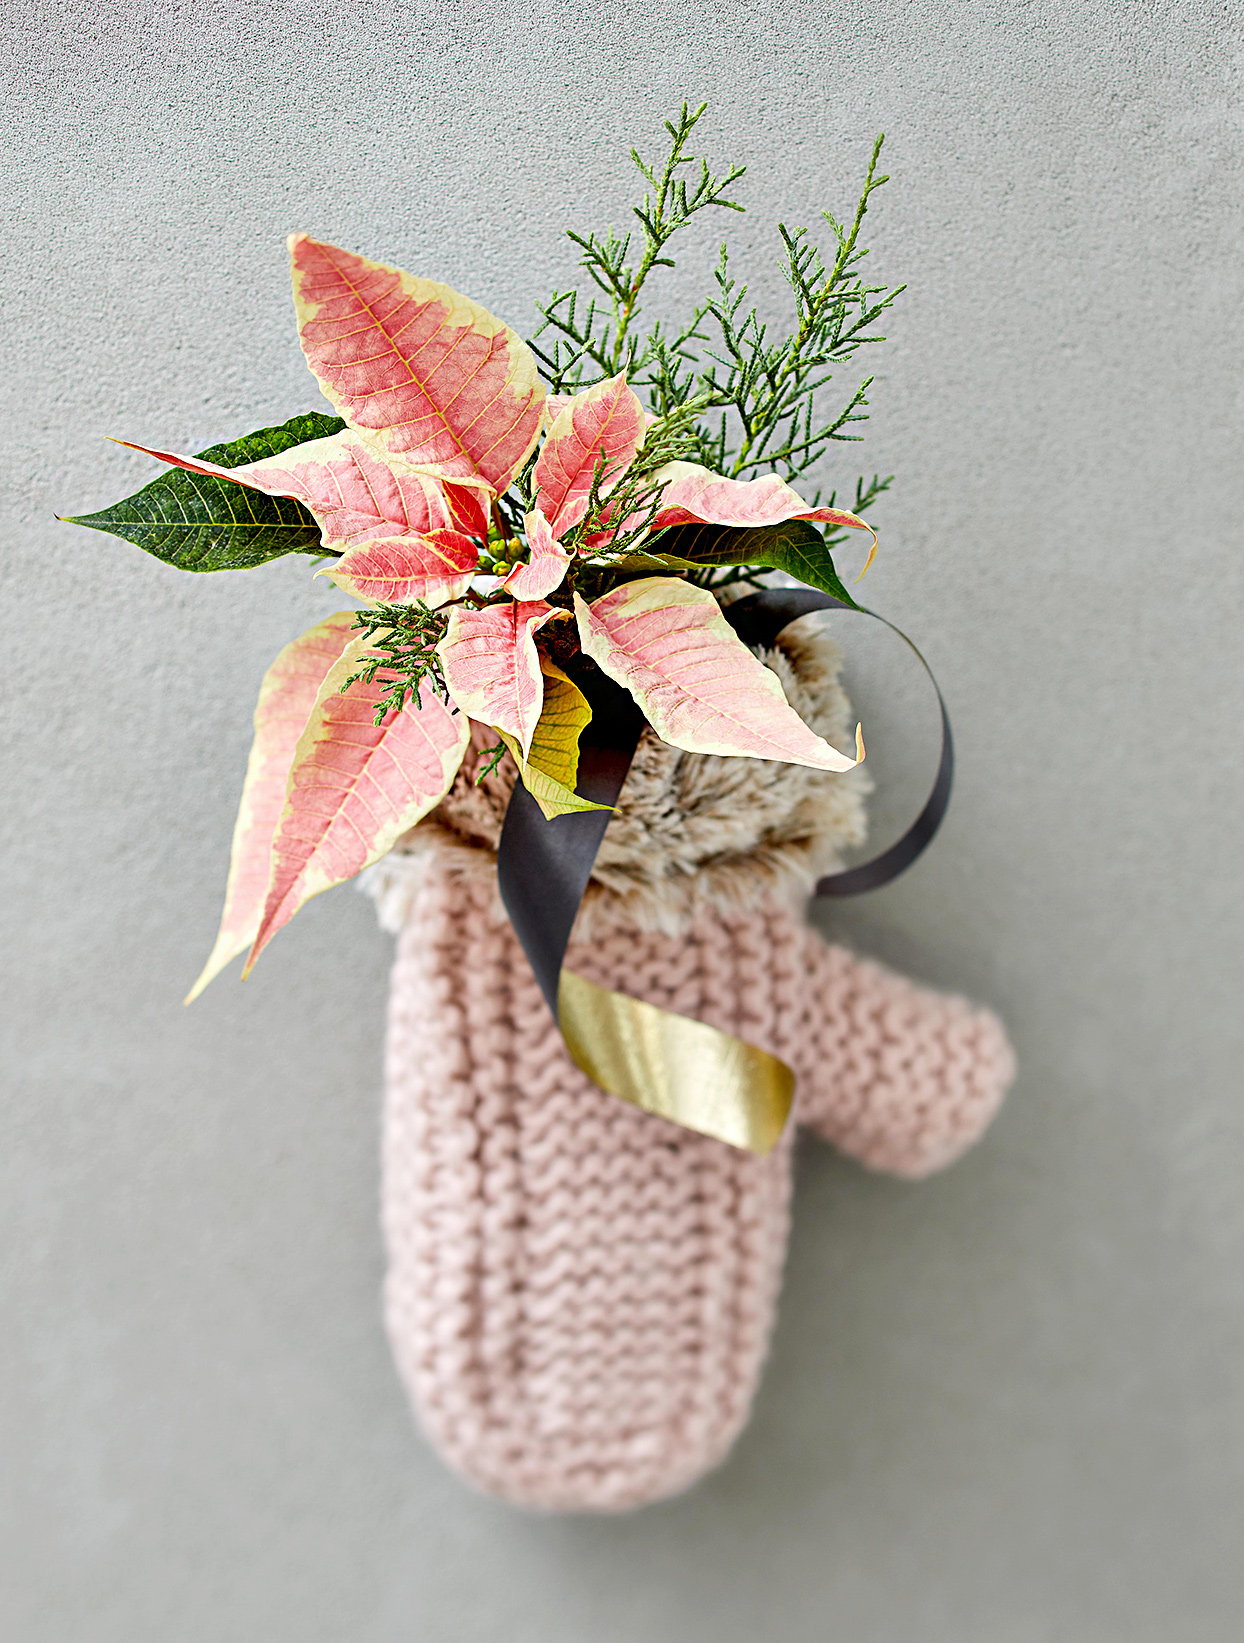 Pink poinsettia in knitted mitten